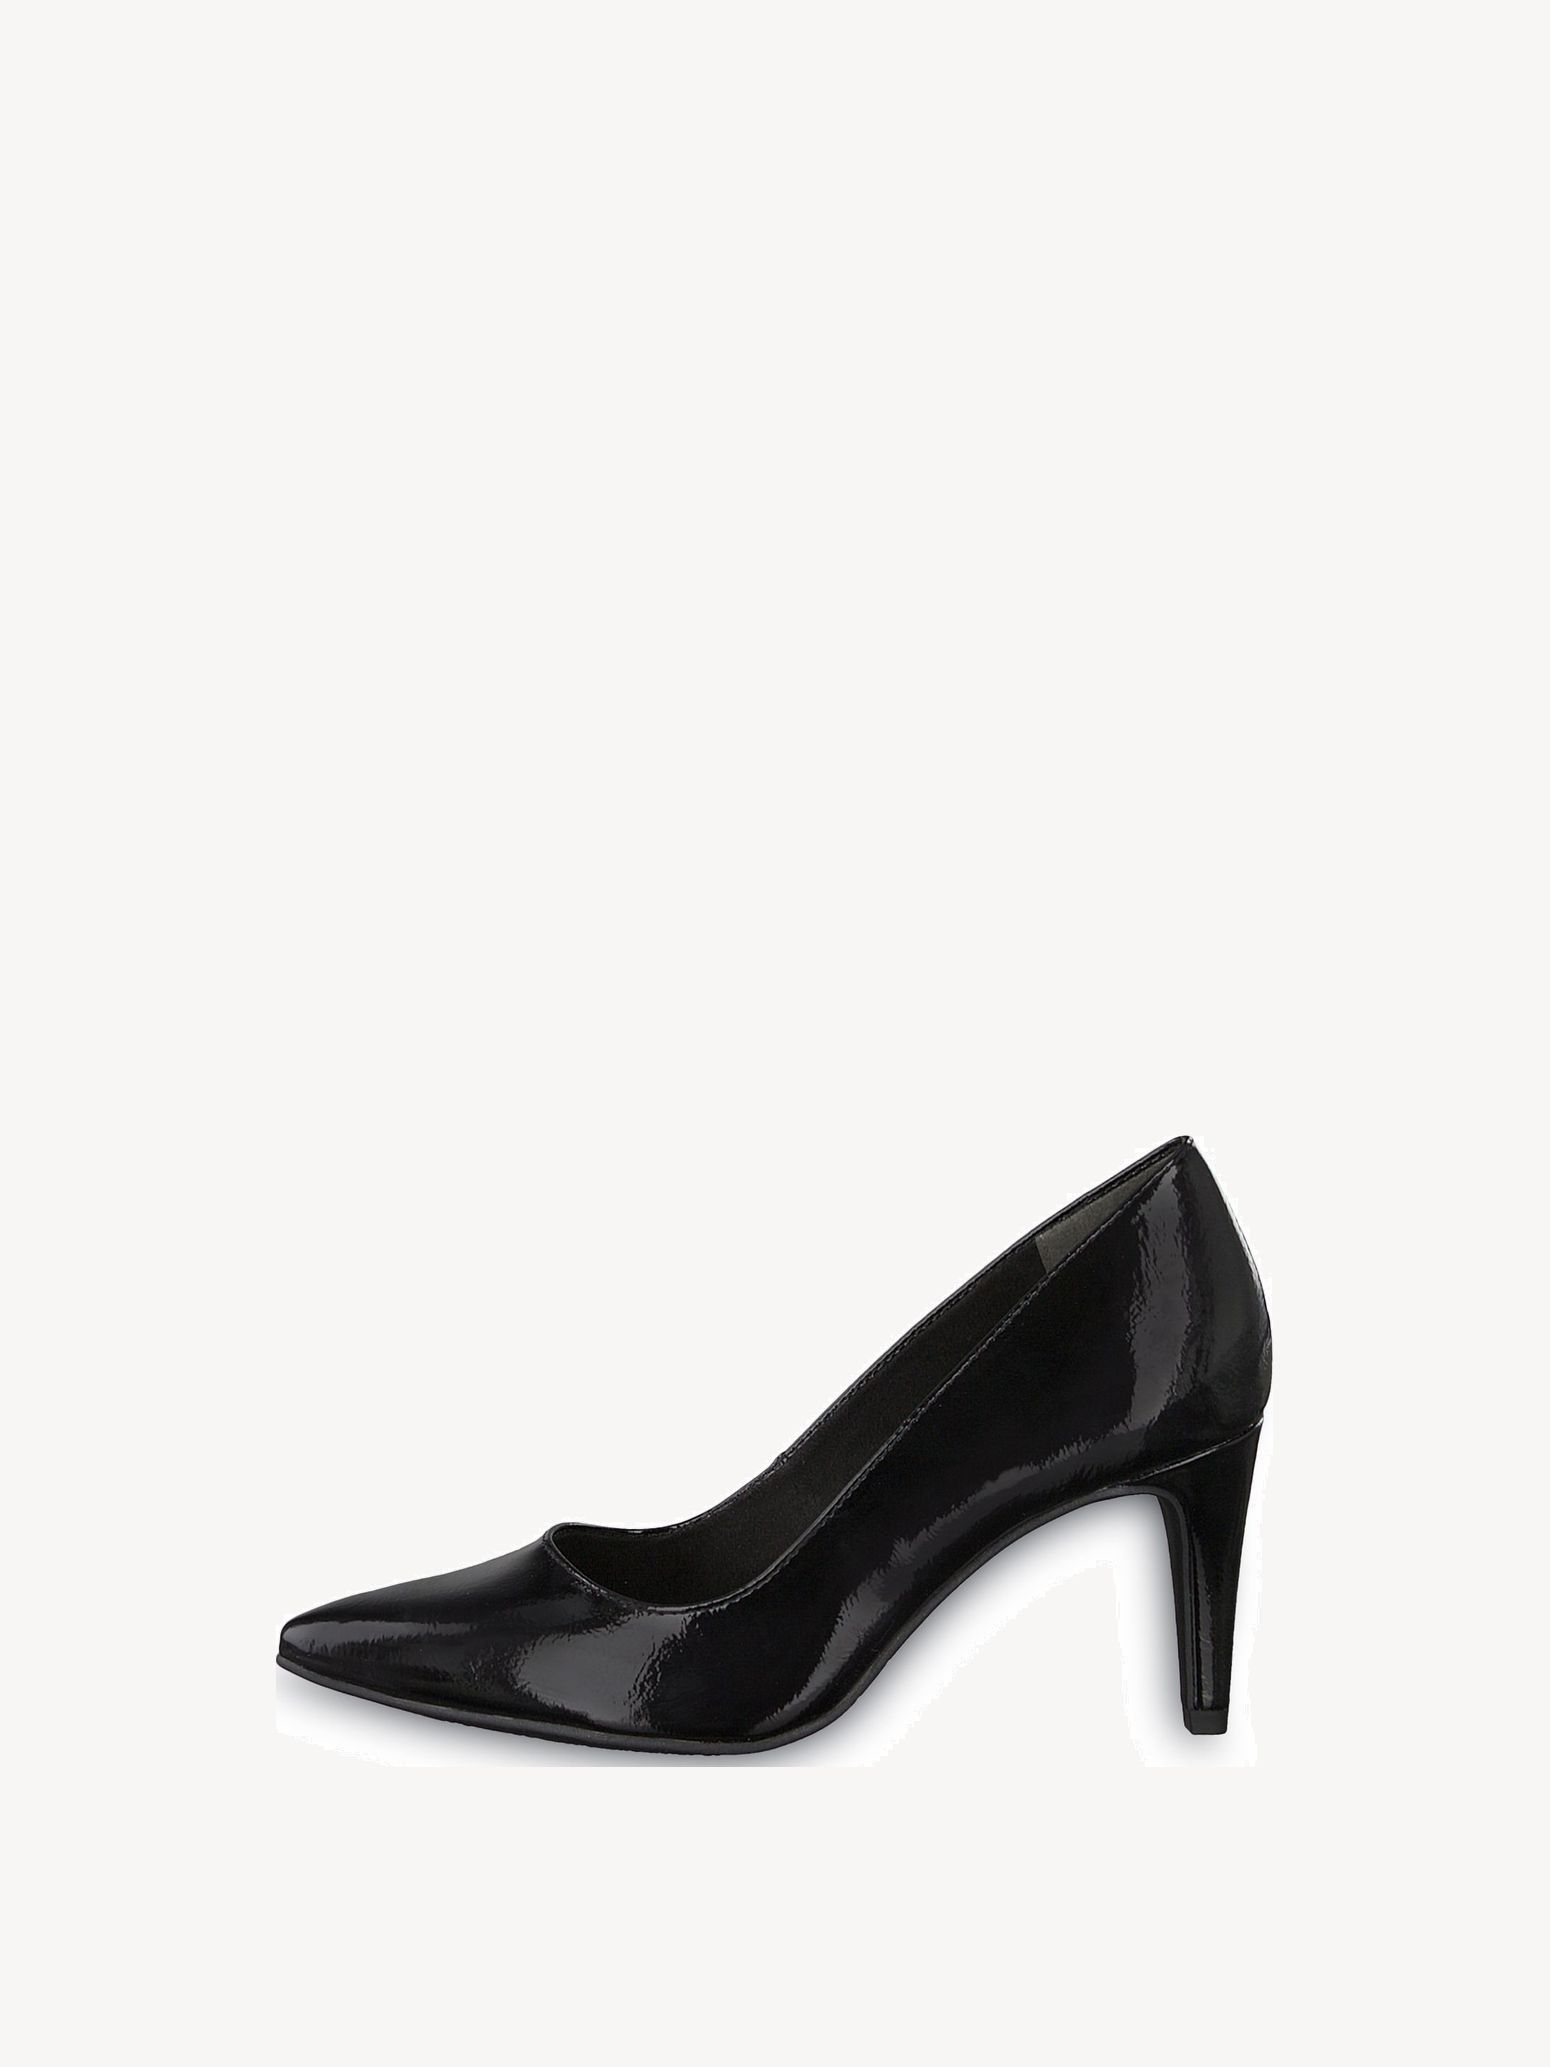 Tamaris 22447 Point Court Shoes in Black Patent